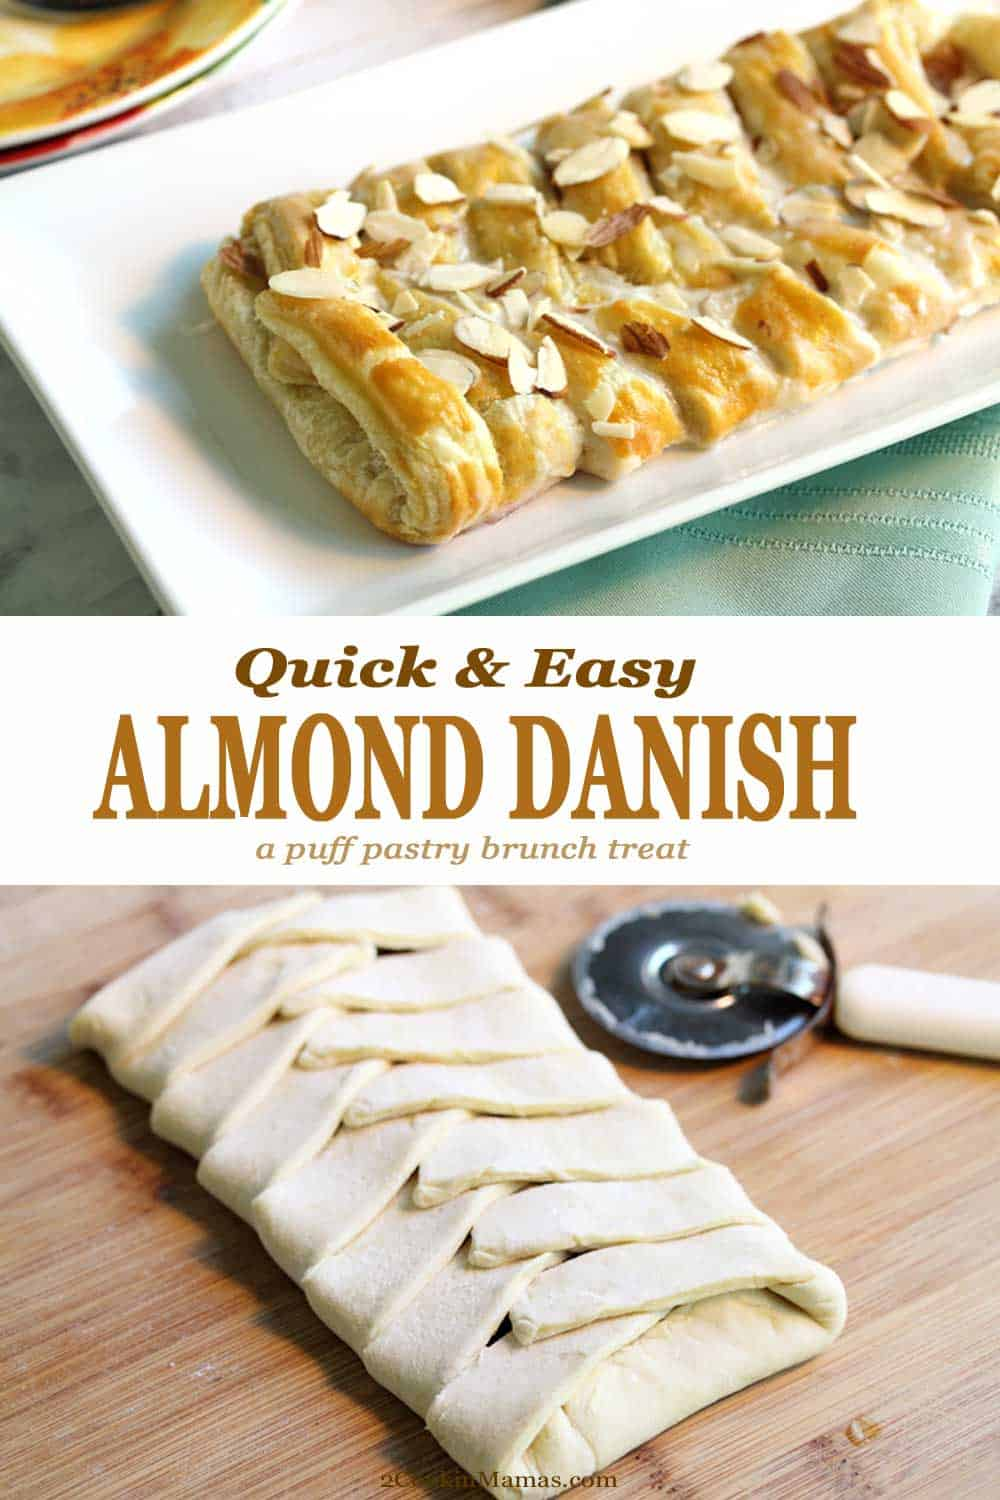 Almond Danish Brunch treat | 2 Cookin Mamas Easy to make danish starting with frozen puff pastry, spread with almond filling and drizzled with icing. Make this for Mother's Day, Christmas or any time you feel like treating yourself. #danish #breakfast #brunch #easy #recipe #puffpastry #almond